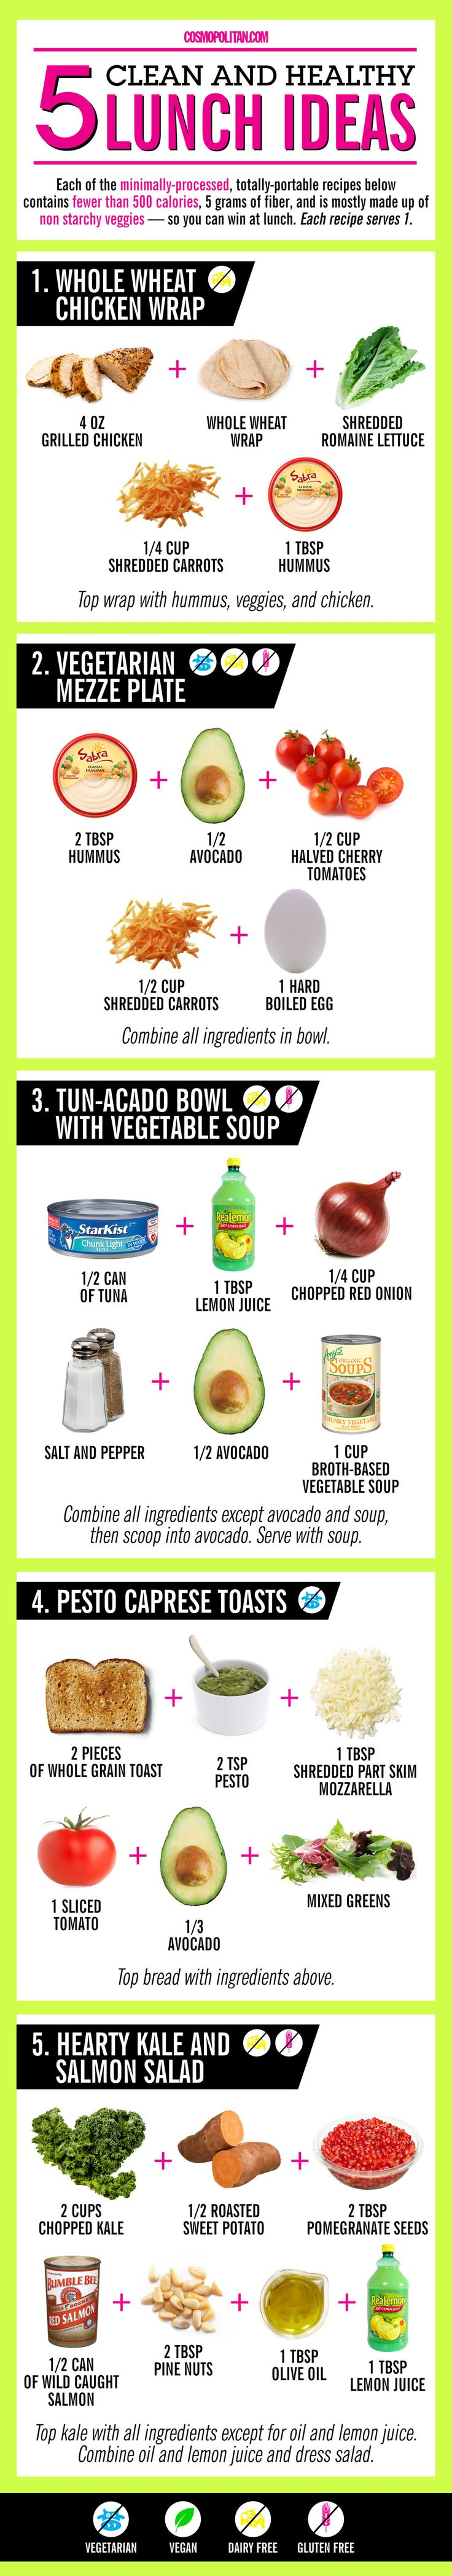 HEALTHY LUNCH IDEAS: Use this healthy eating guide from registered dietitian Isabel Smith, to keep your meals, snacks, and treats (yes, ~*TrEaTs~*!) as healthy as can be. Here you'll find easy, delicious, quick, and low calorie lunch ideas and recipes like a whole wheat chicken wrap, a vegetarian mezze plate, a tun-acado bowl with vegetable soup, pesto caprese toasts, and a hearty kale salmon salad. Click through for the full details and for more healthy meal ideas including vegetarian…